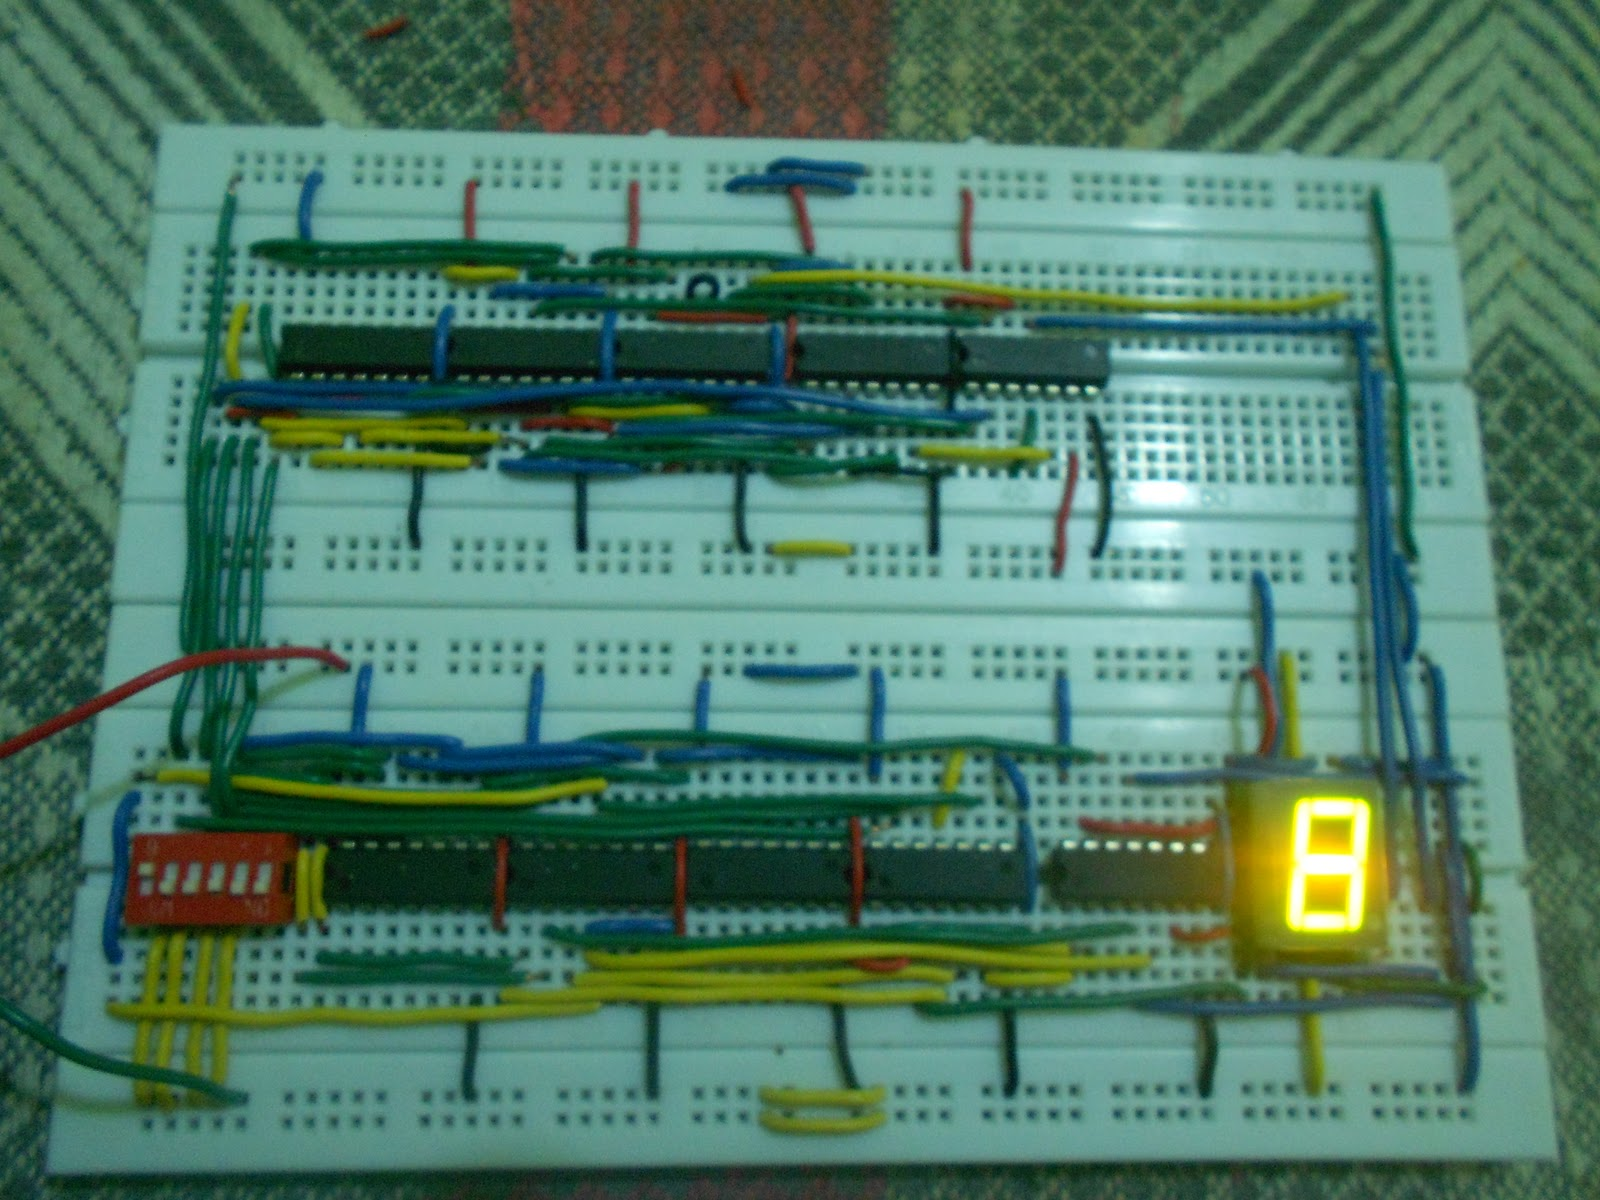 Convert Circuit Diagram To Breadboard Vw Beetle Wiring 1966 Ece Logic The Seven Segment Display